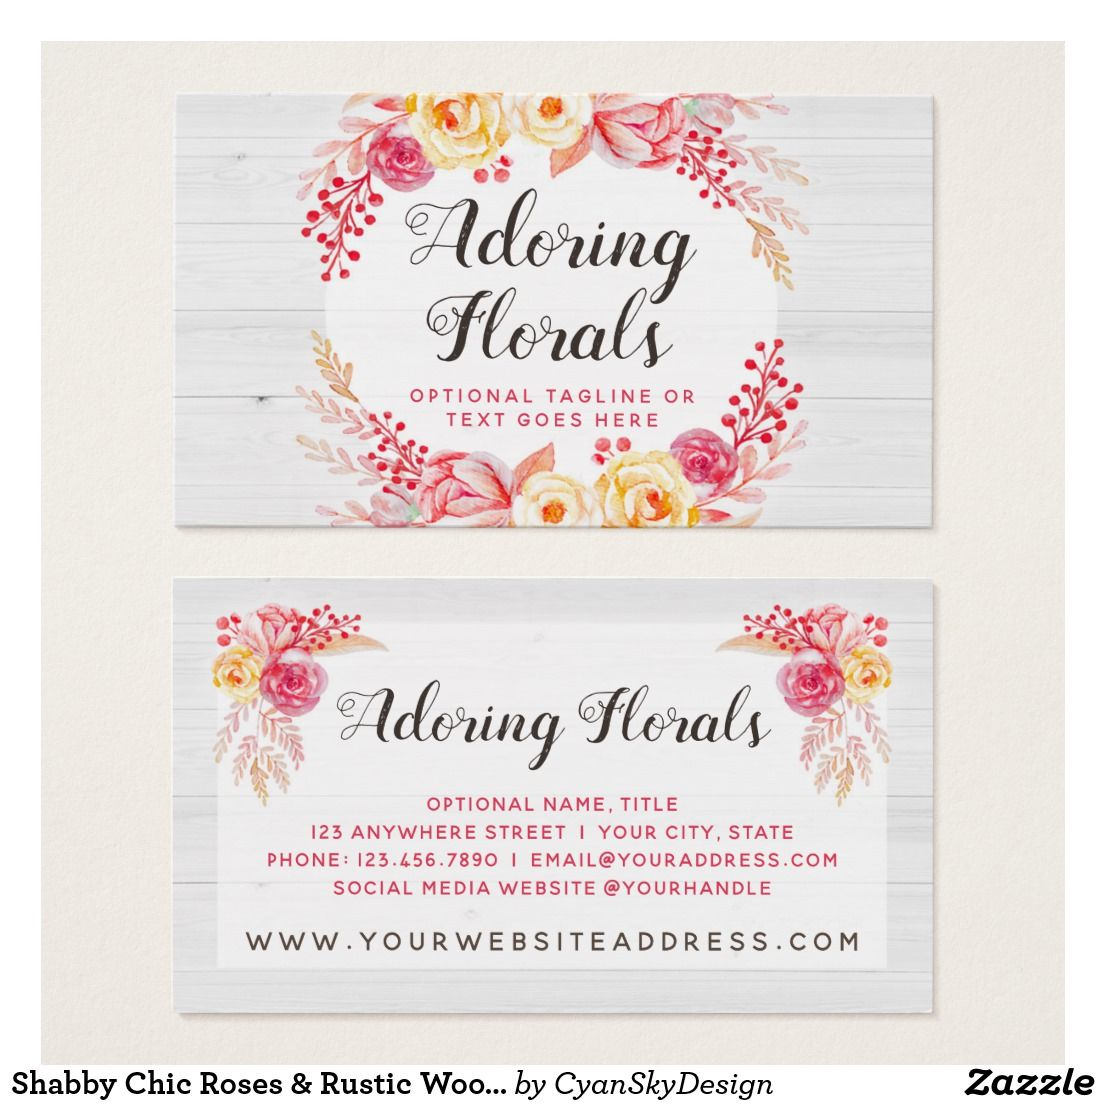 Shabby chic roses rustic wood blush pink floral business card shabby chic roses rustic wood blush pink floral business card reheart Image collections